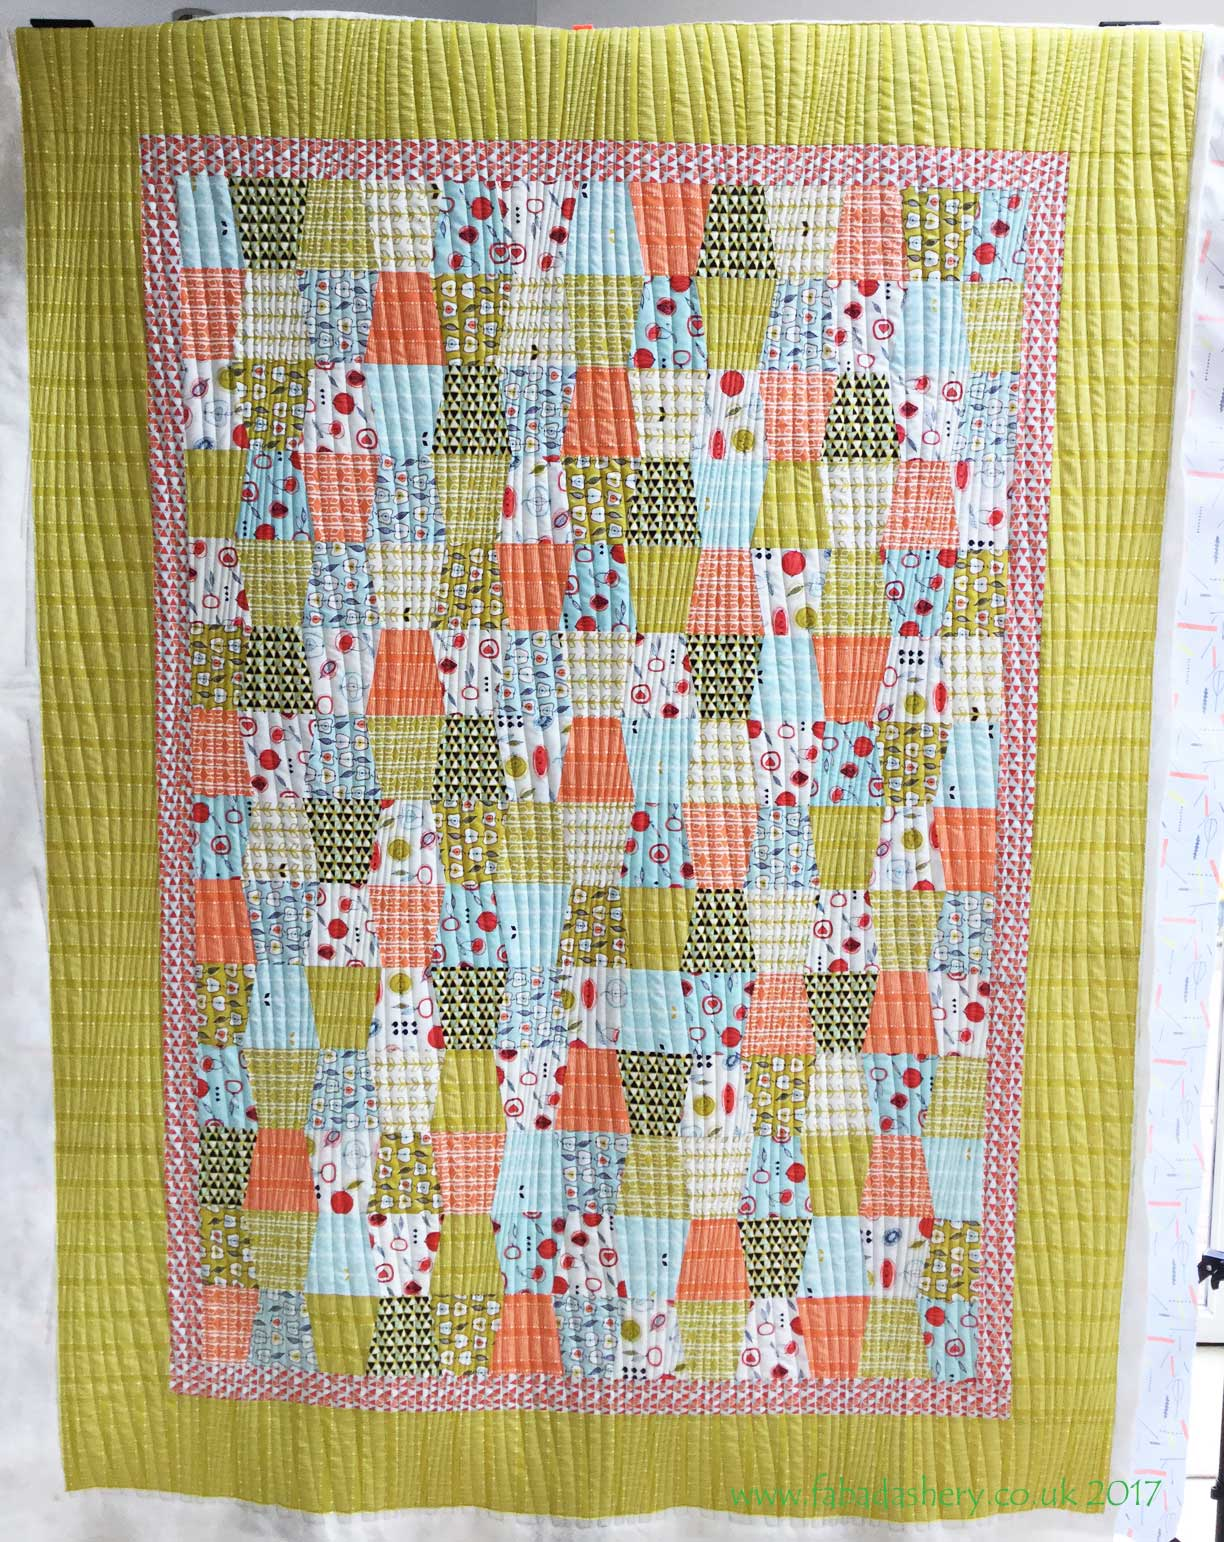 Fabadashery Longarm Quilting: Modern Tumbler Quilt by Natalie using Modern Curves quilting pattern